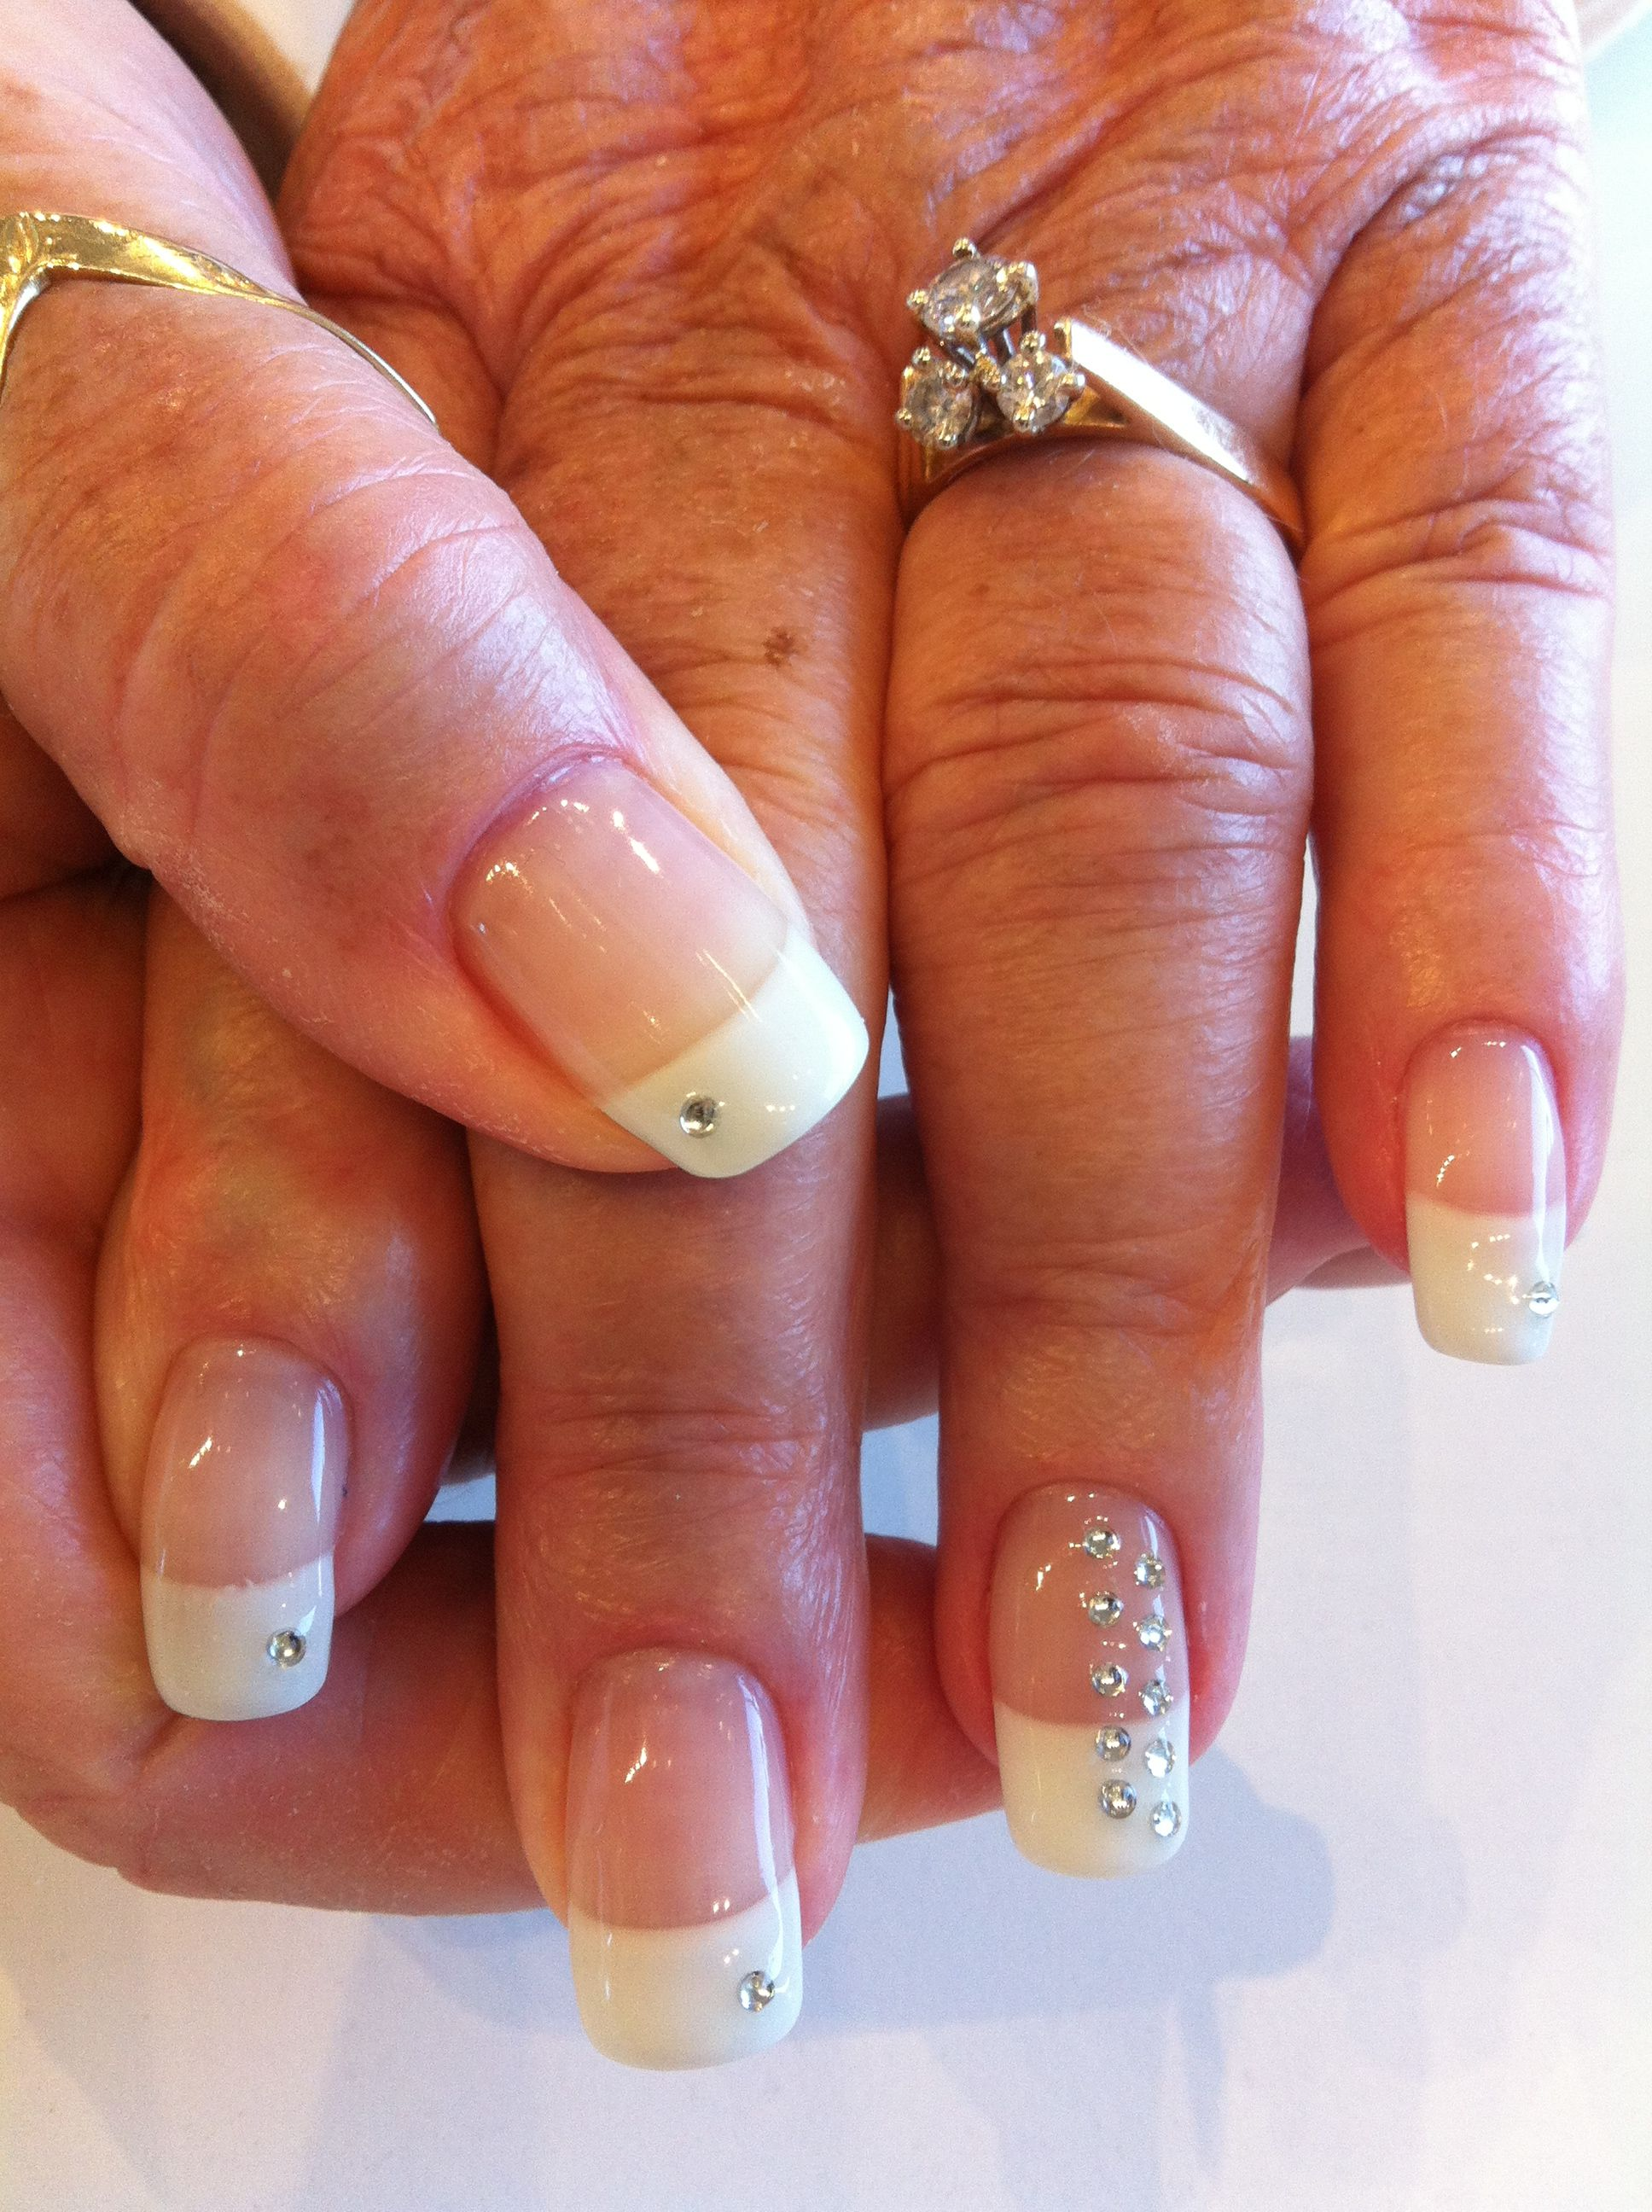 Classic French manicure with rhinestone accents. | Nails | Pinterest ...